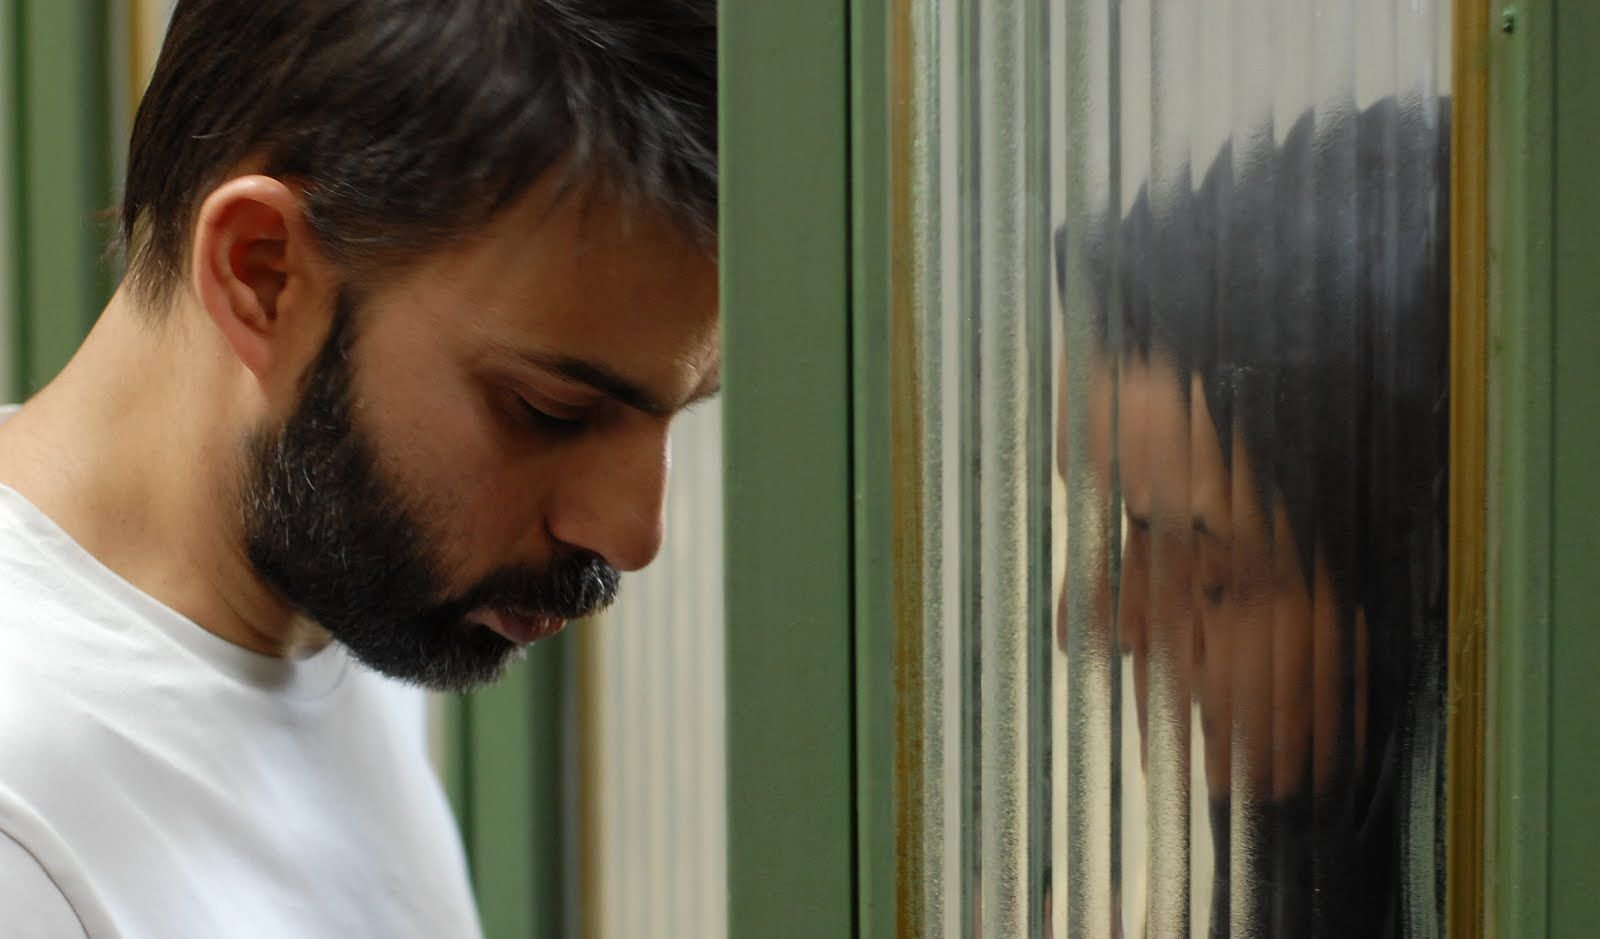 An image from A Separation